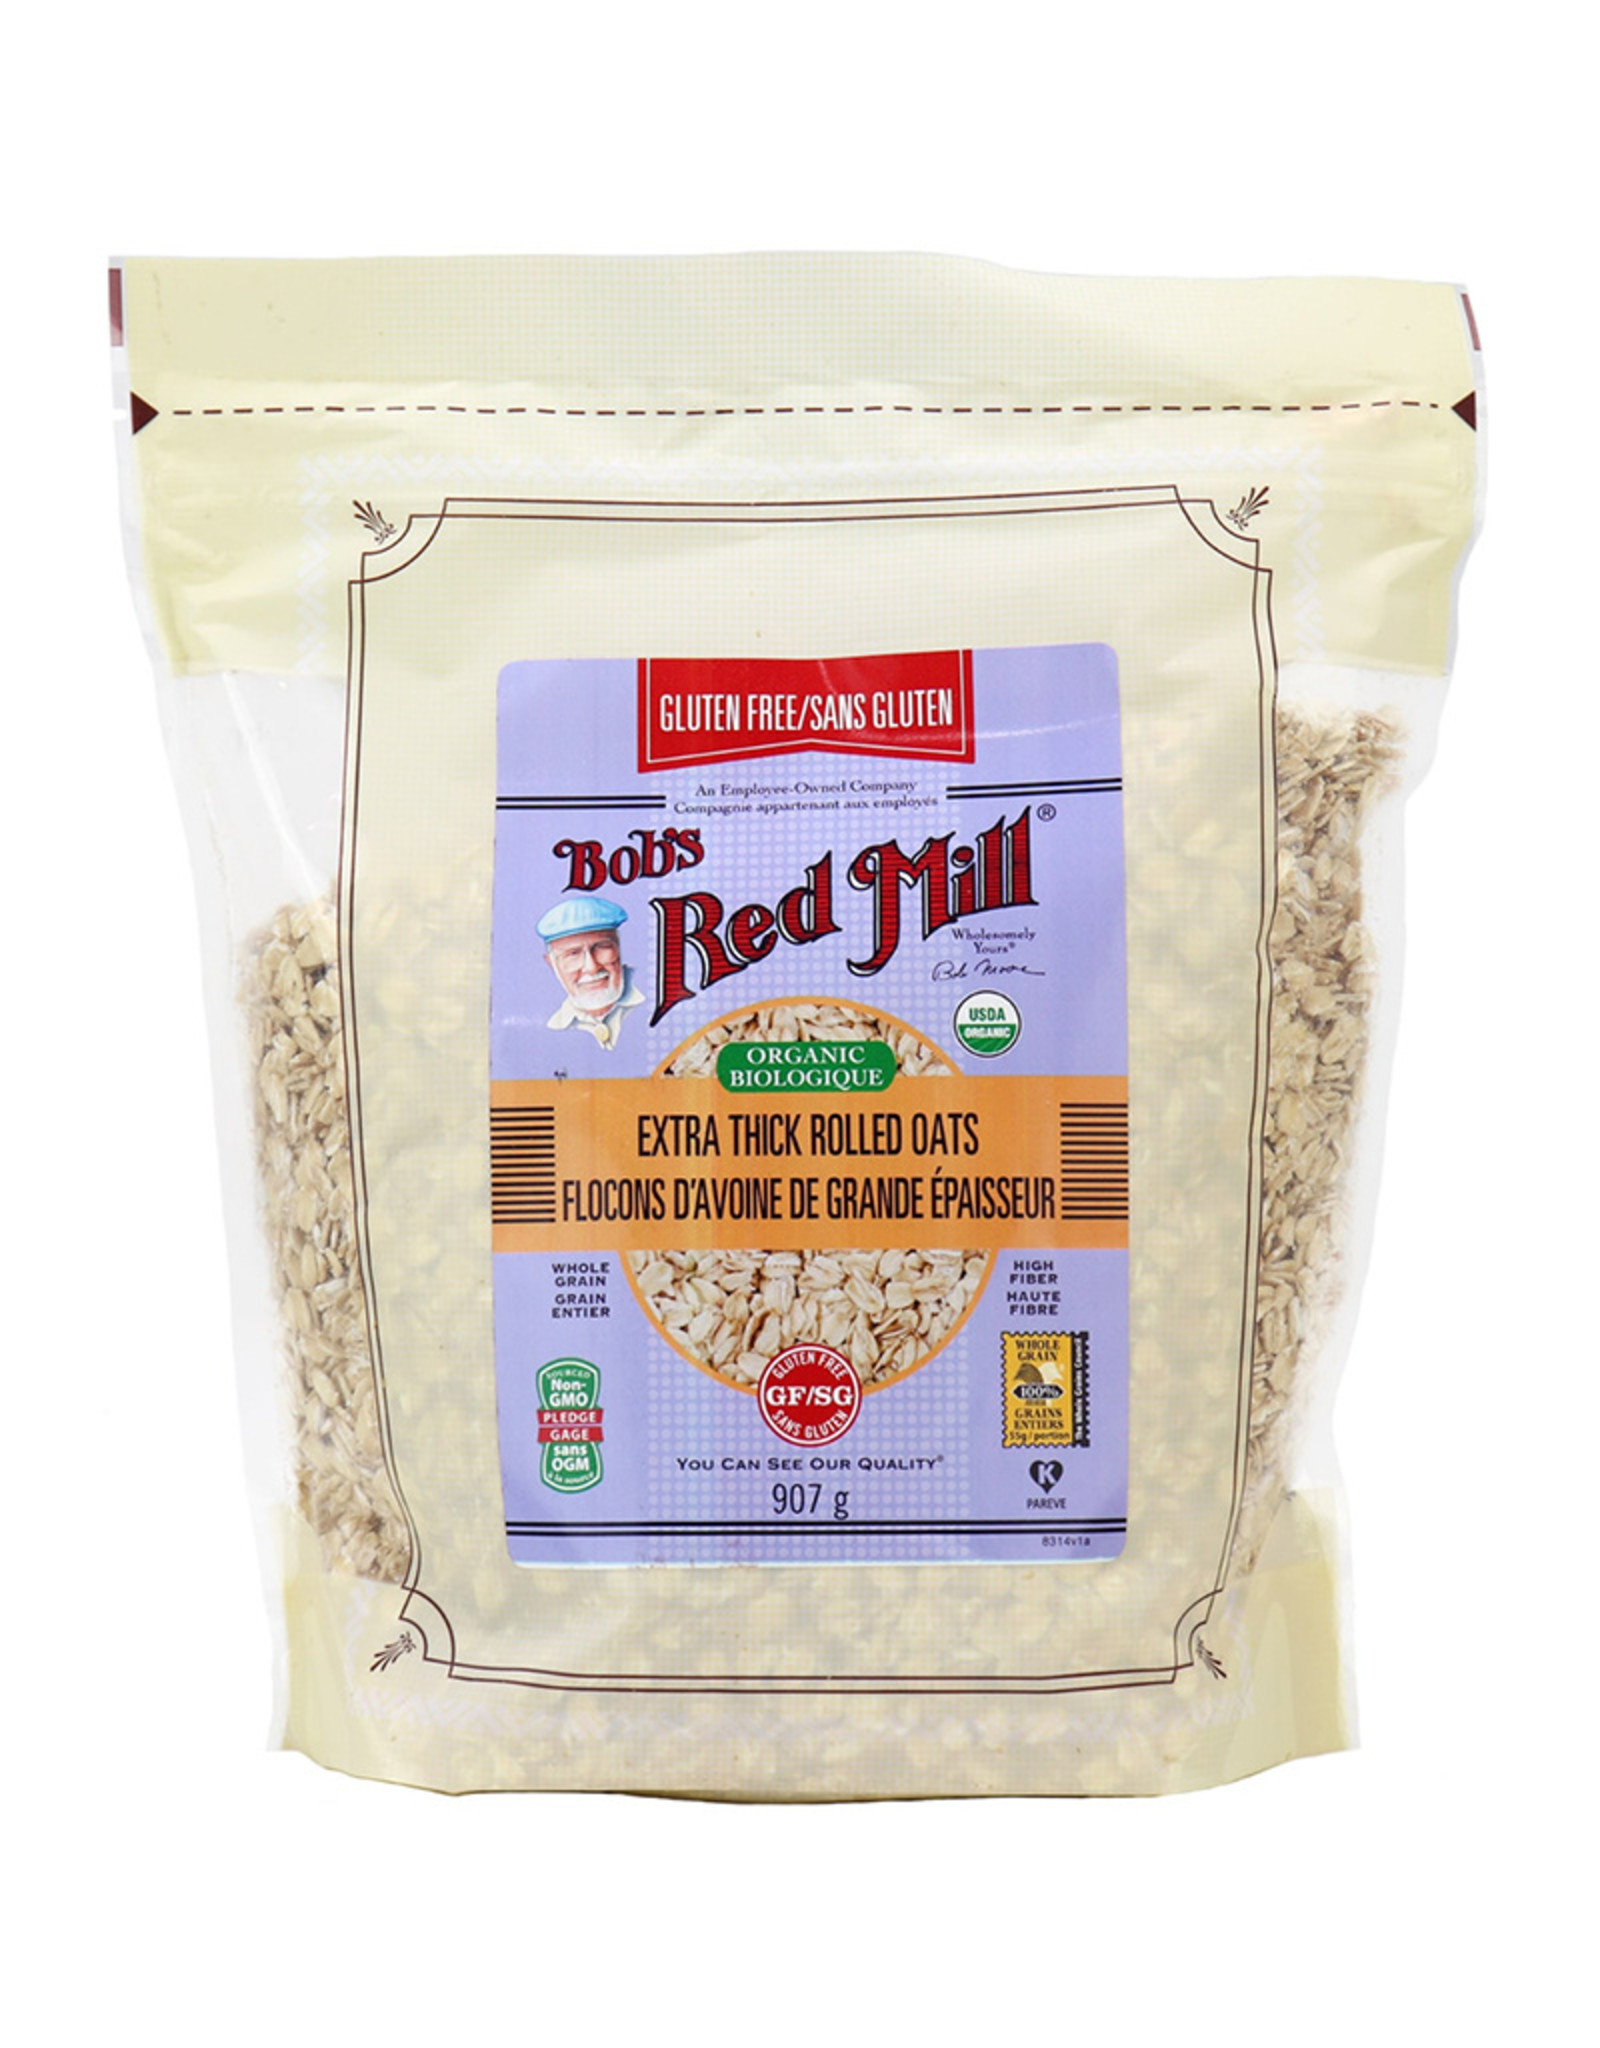 Bob's Red Mill Bobs Red Mill - GF Rolled Oats, Thick (907g)